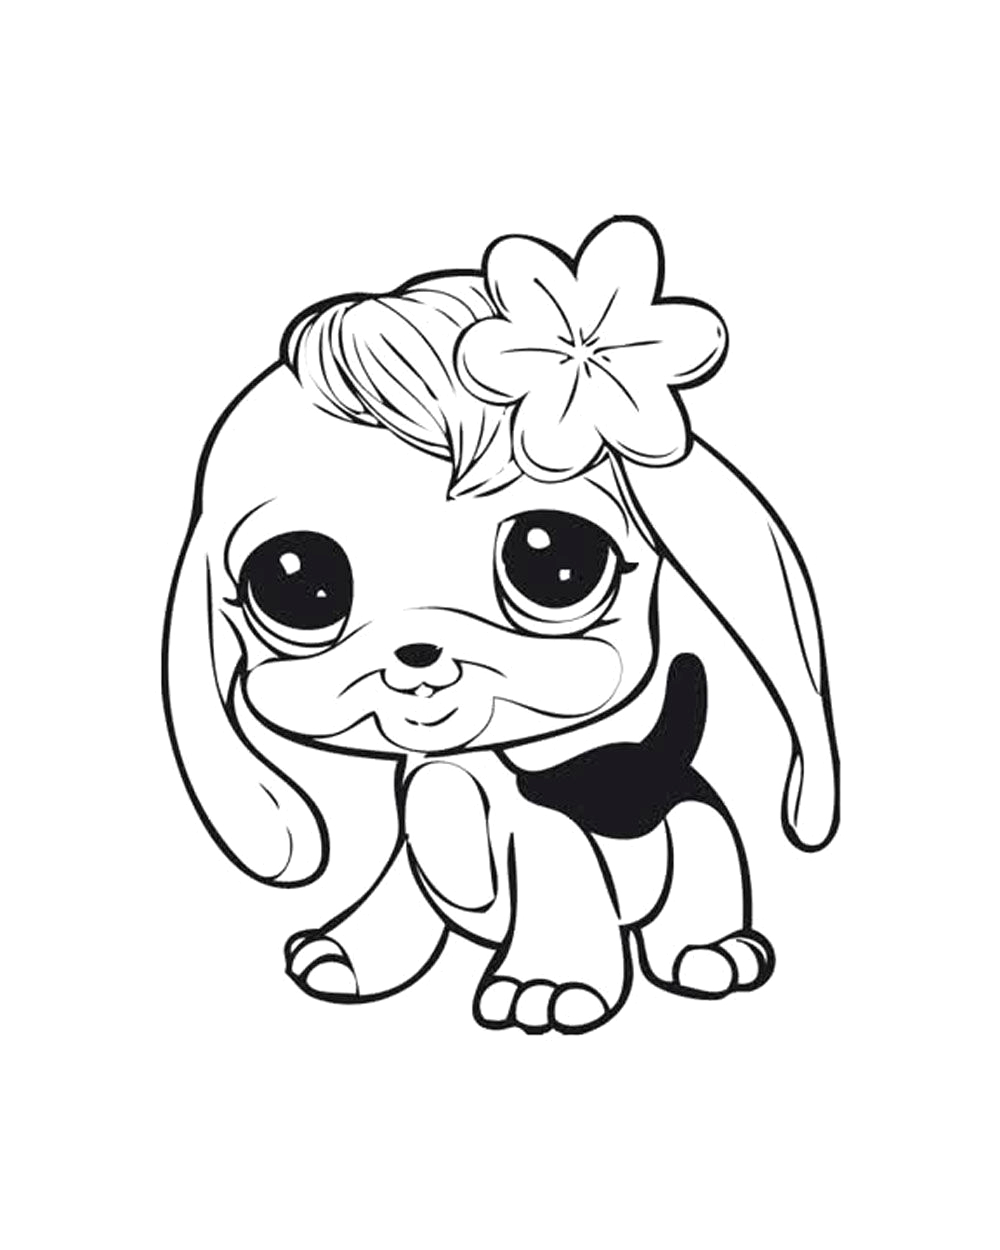 Littlest Pet Shop Coloring Pages to Print Littlest Pet Shops Coloring Page for My Kids